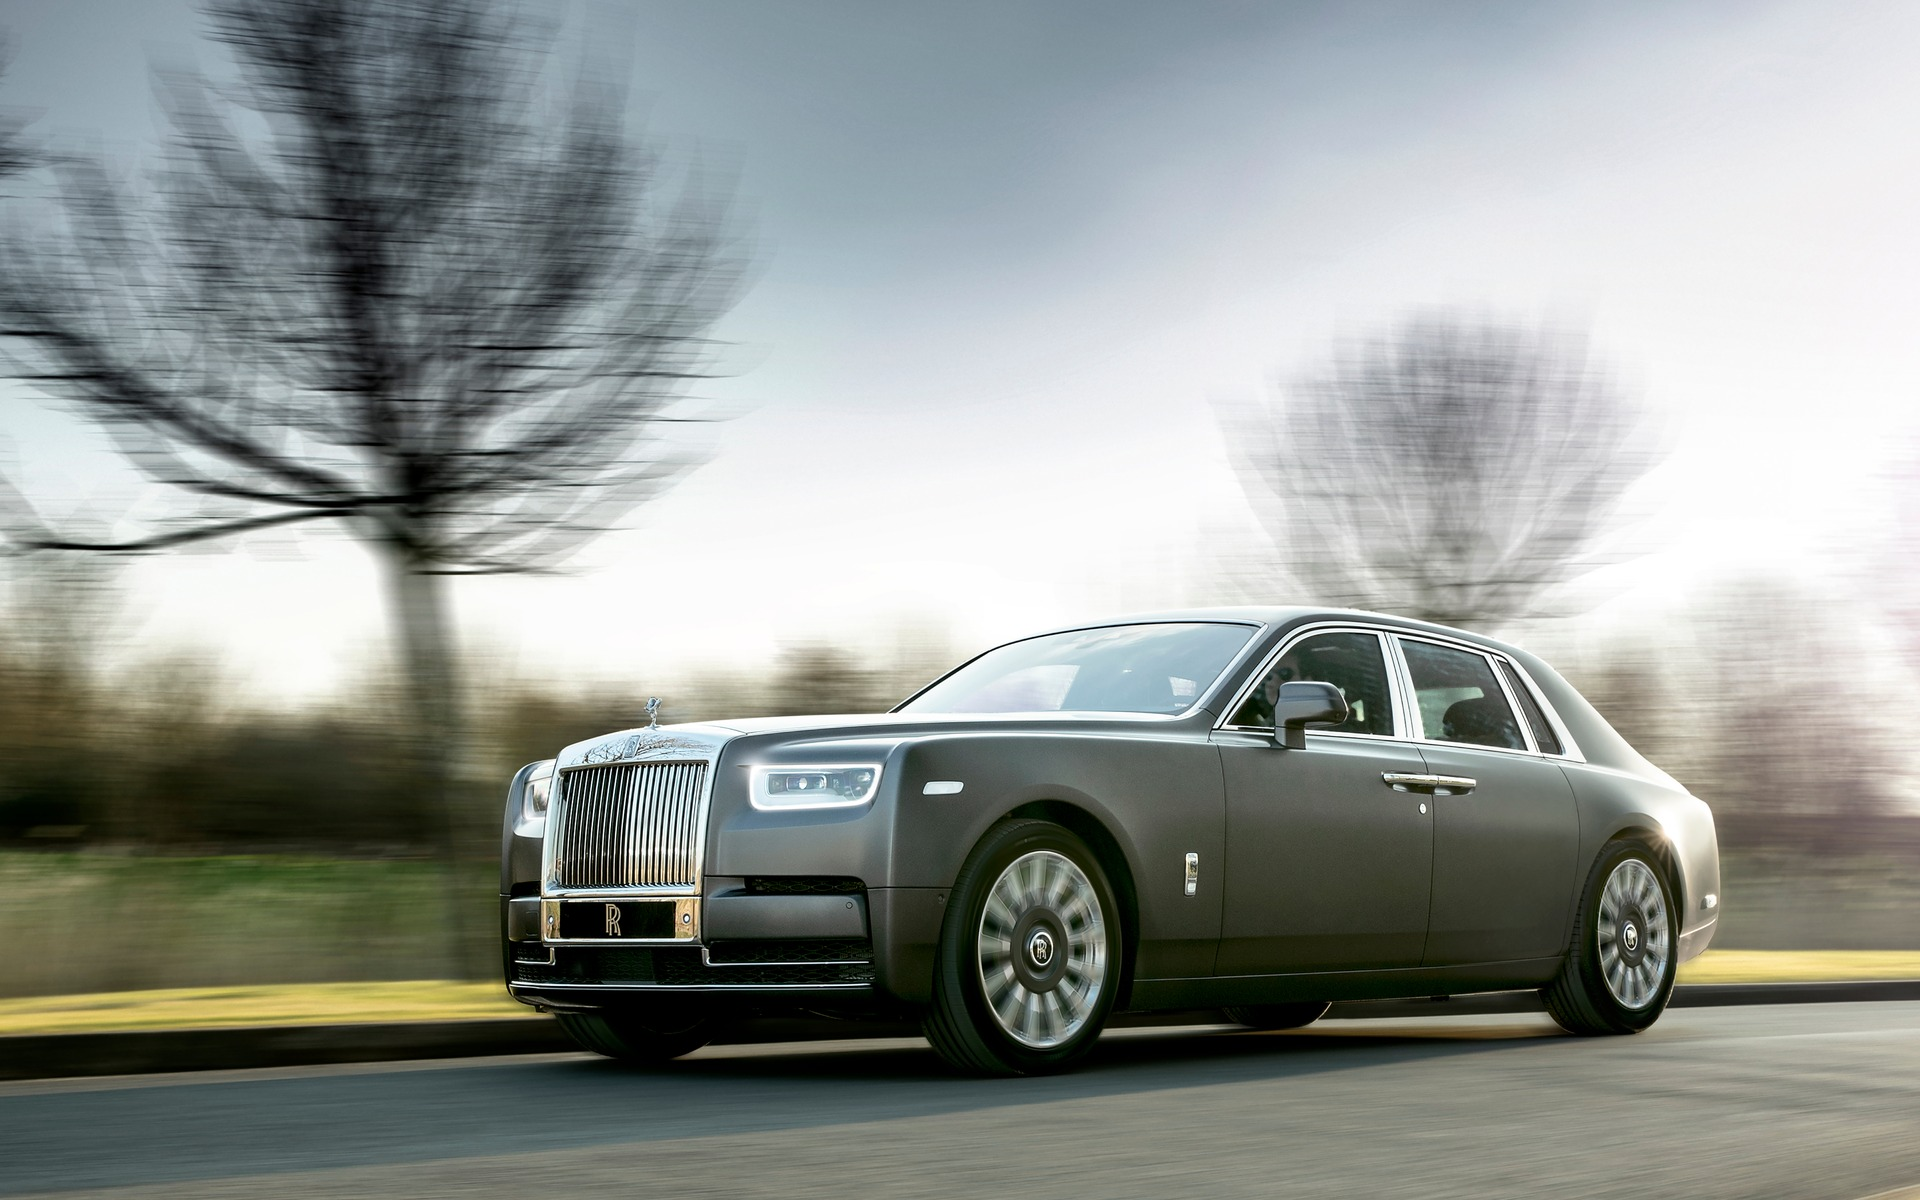 2019 Rolls Royce Phantom News Reviews Picture Galleries And Videos The Car Guide